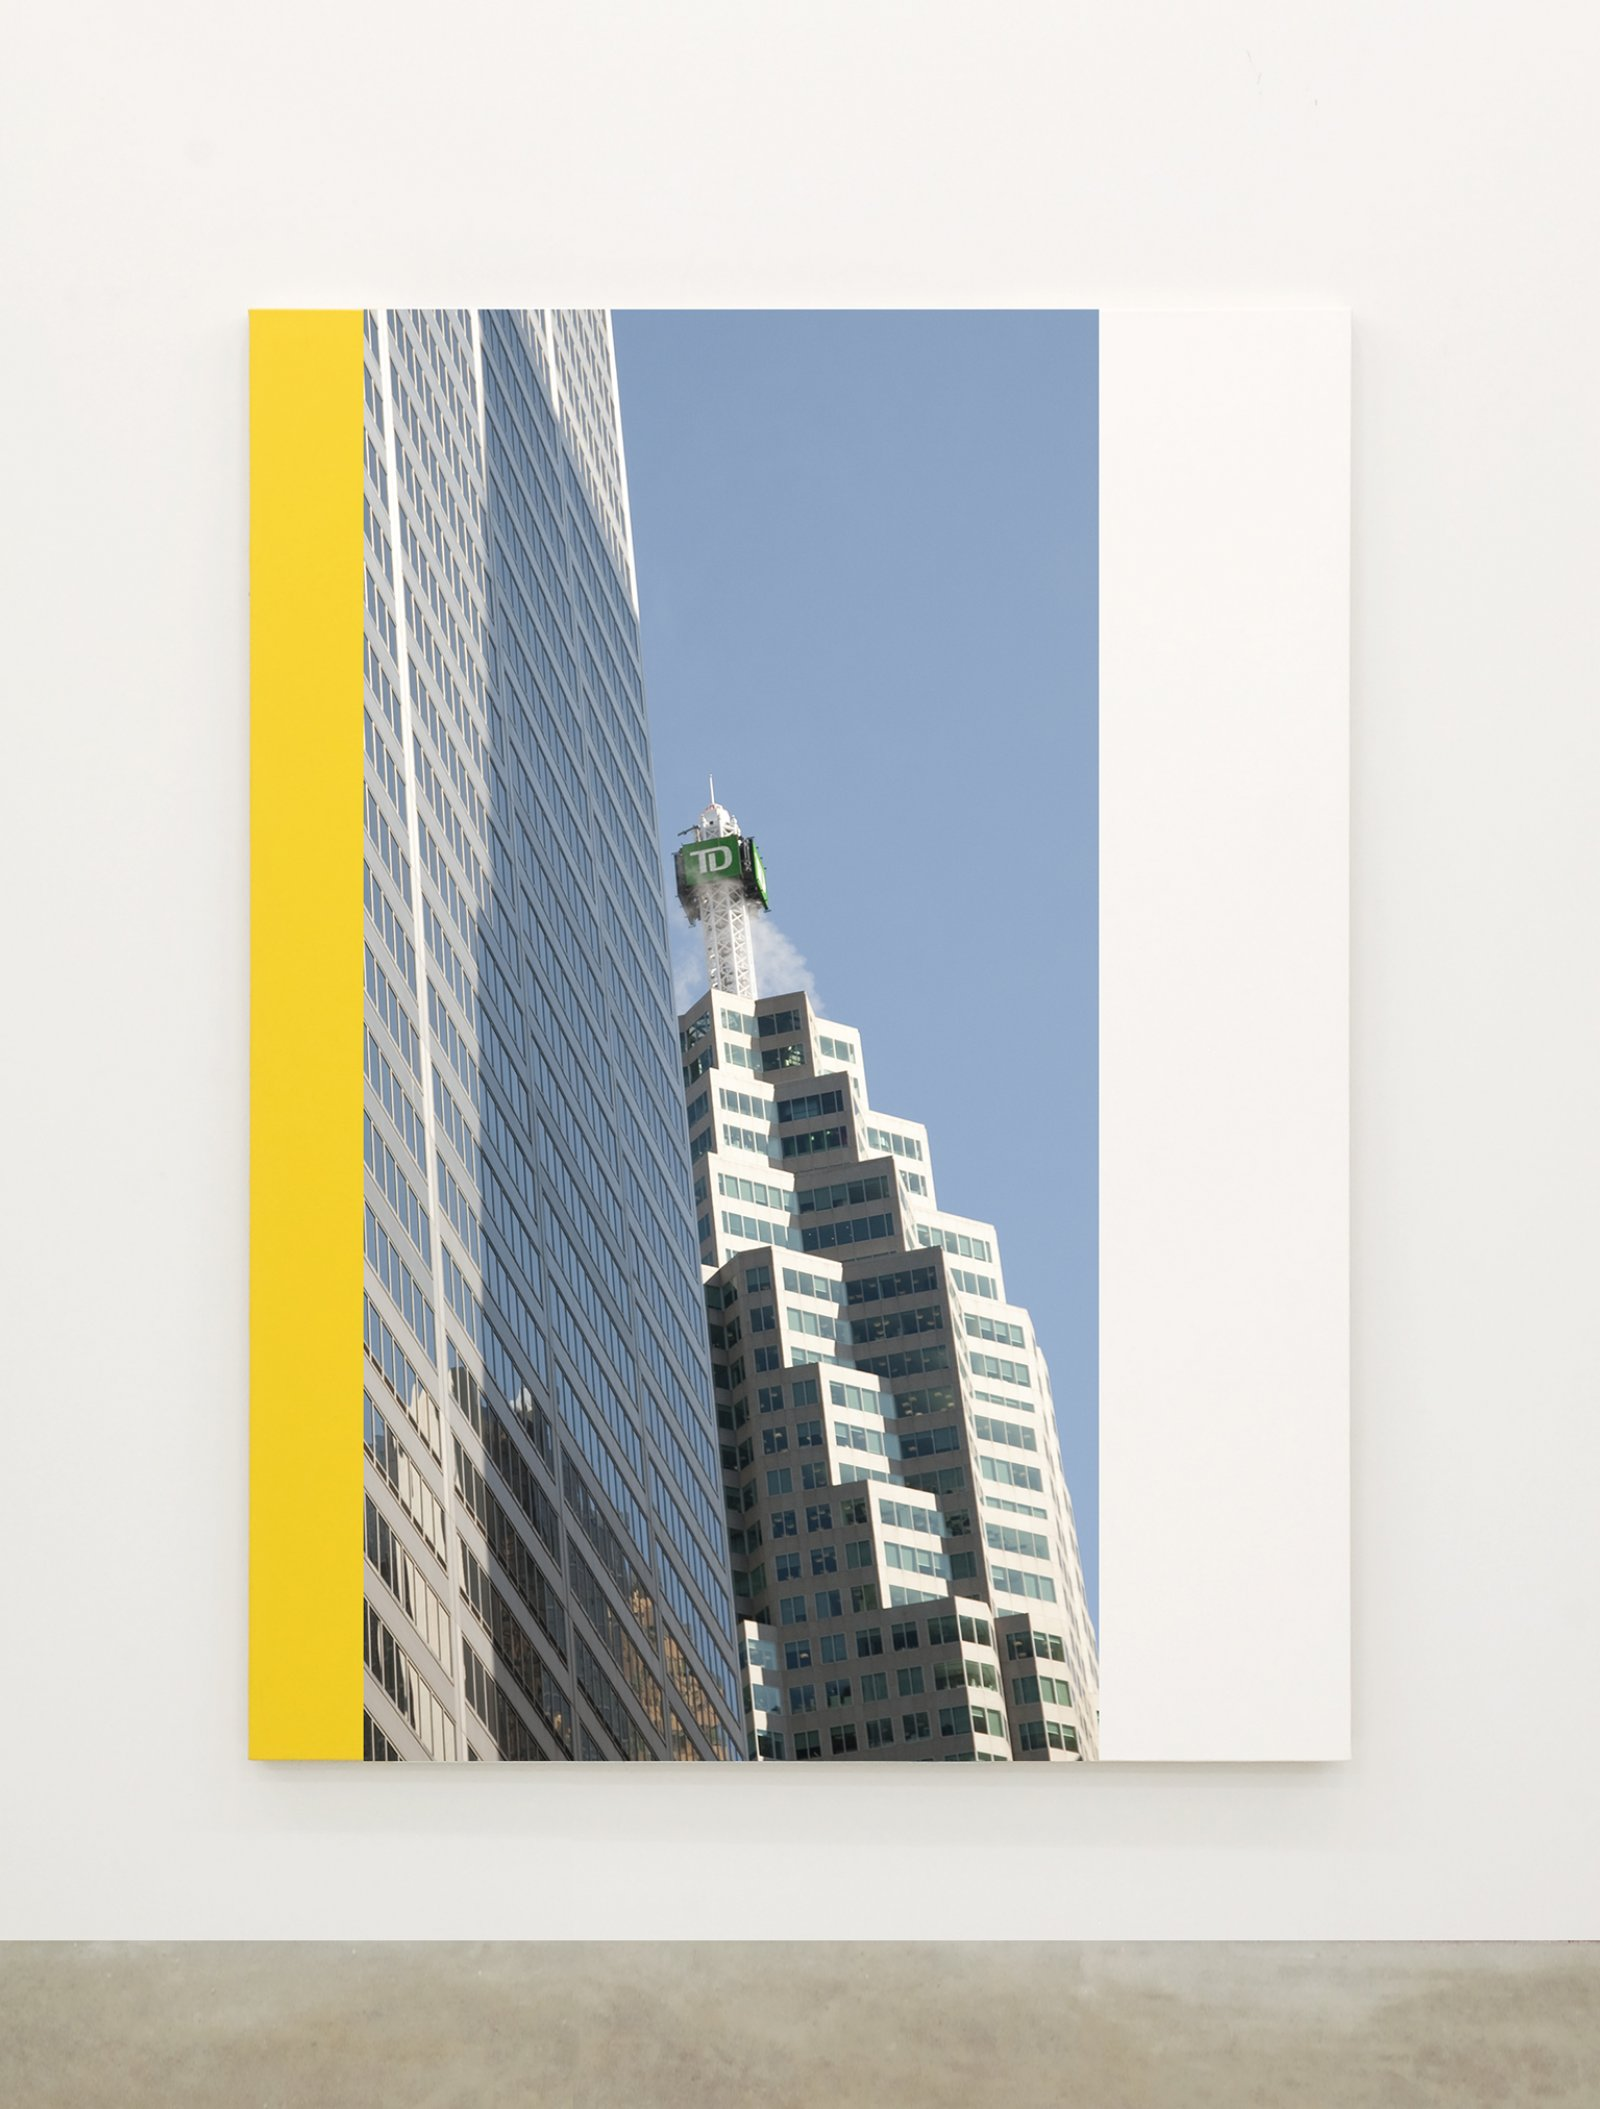 Ian Wallace,Abstract Painting IV(The Financial District), 2010,12 photolaminate with acrylic on canvas panels, each 96 x 72 in. (244 x 183 cm)